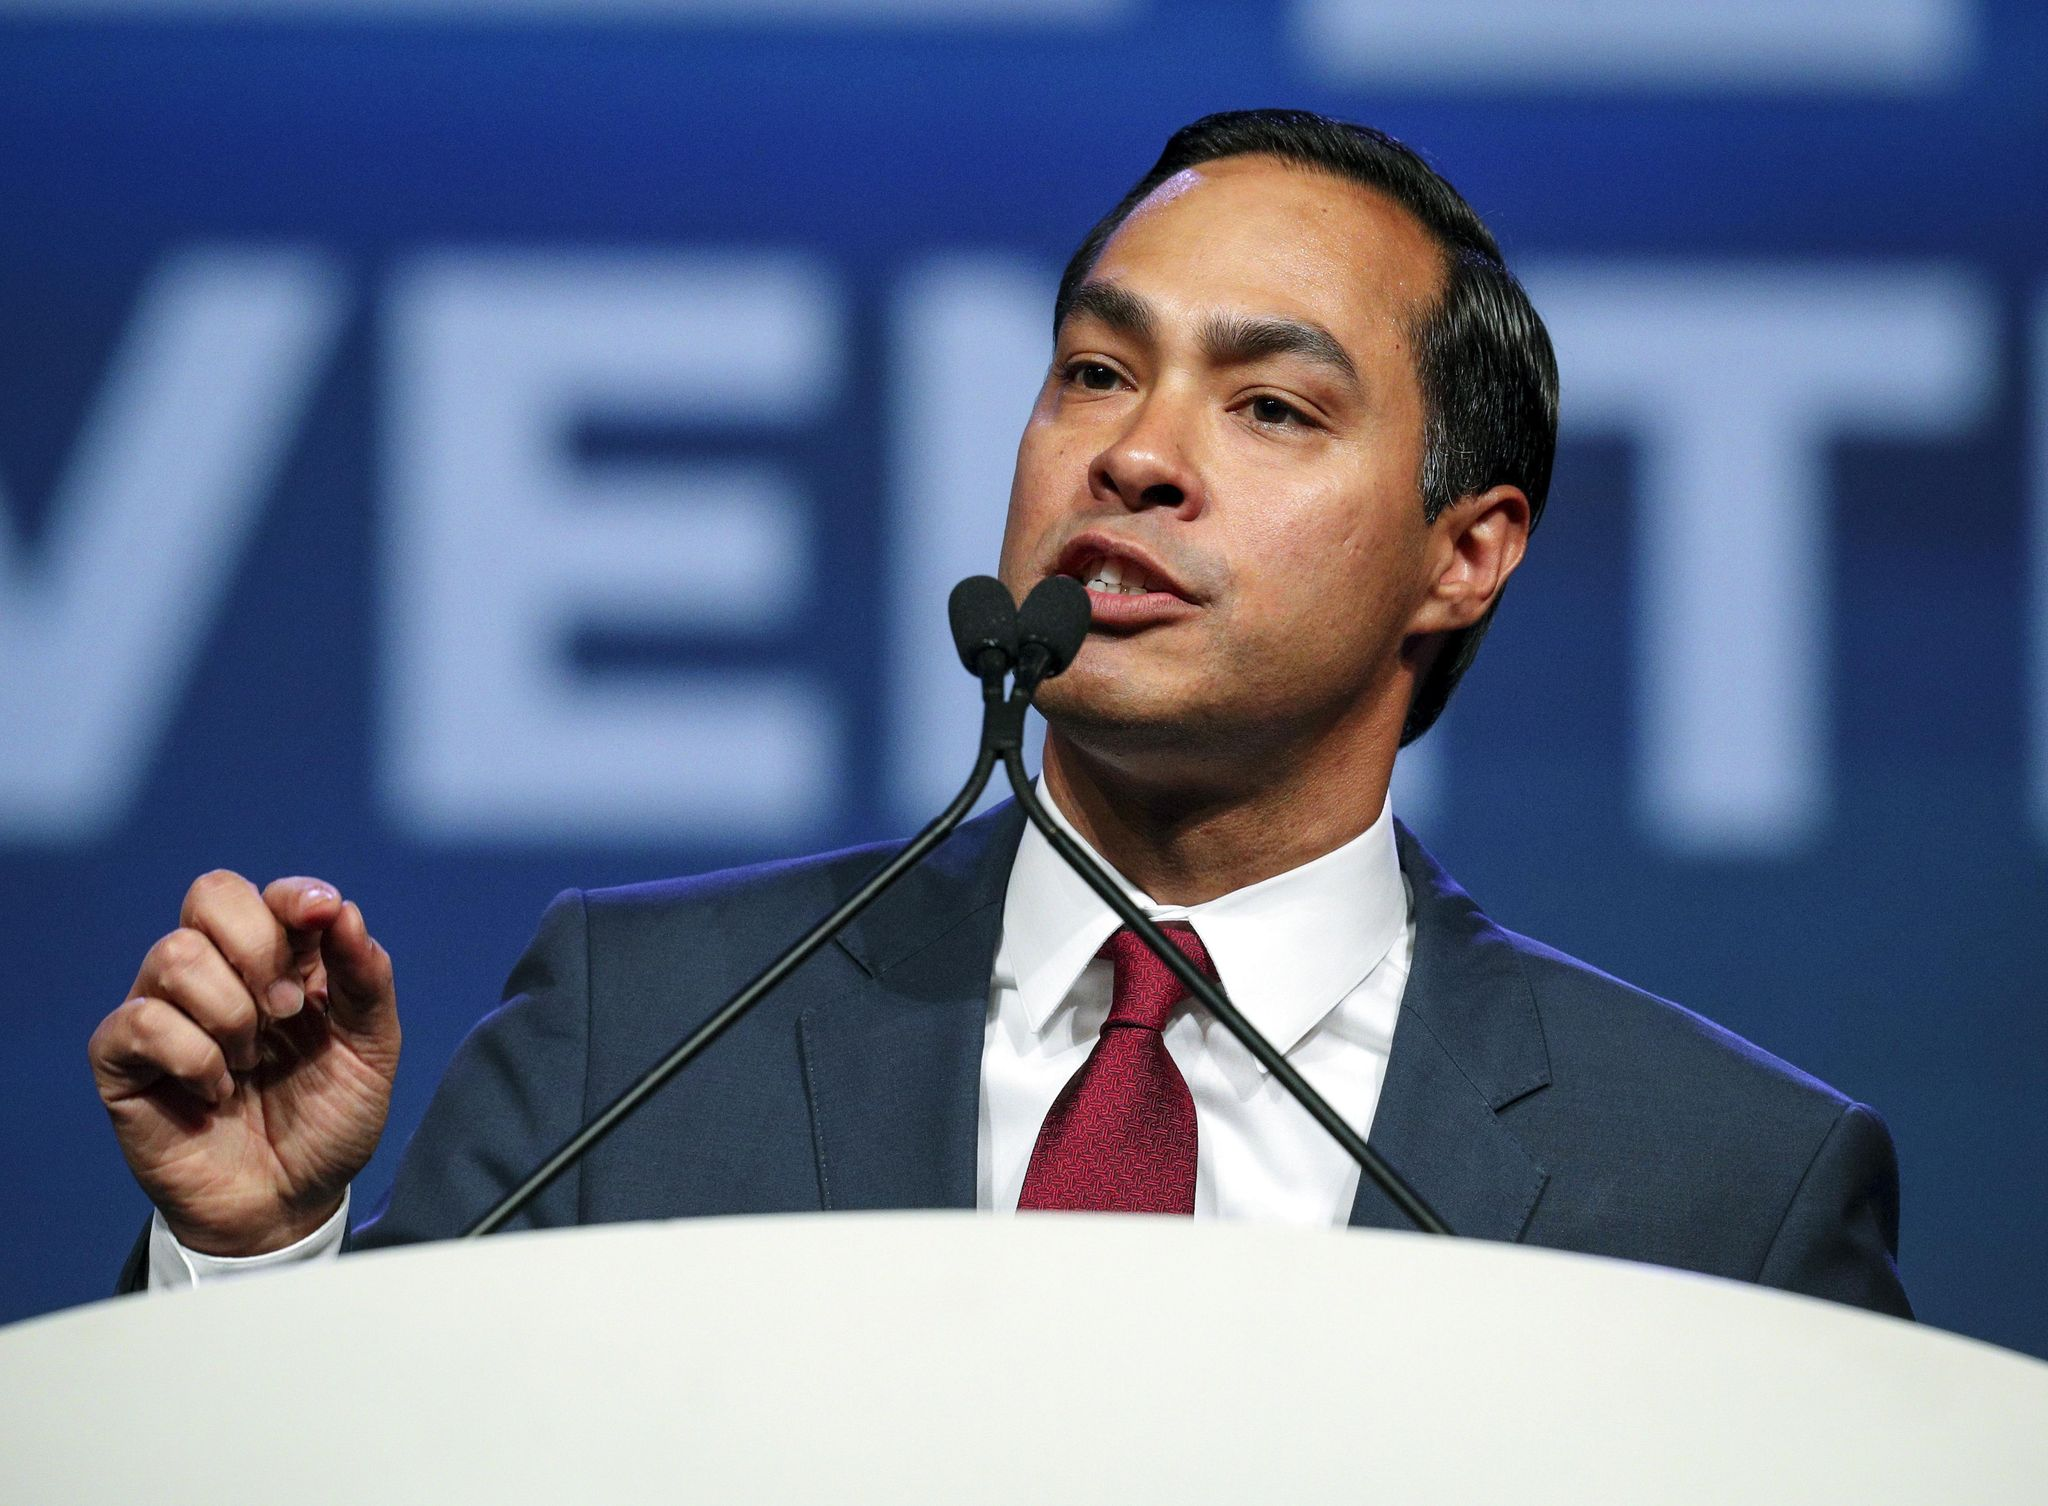 Former Obama Cabinet member Julian Castro 'likely' to run in 2020